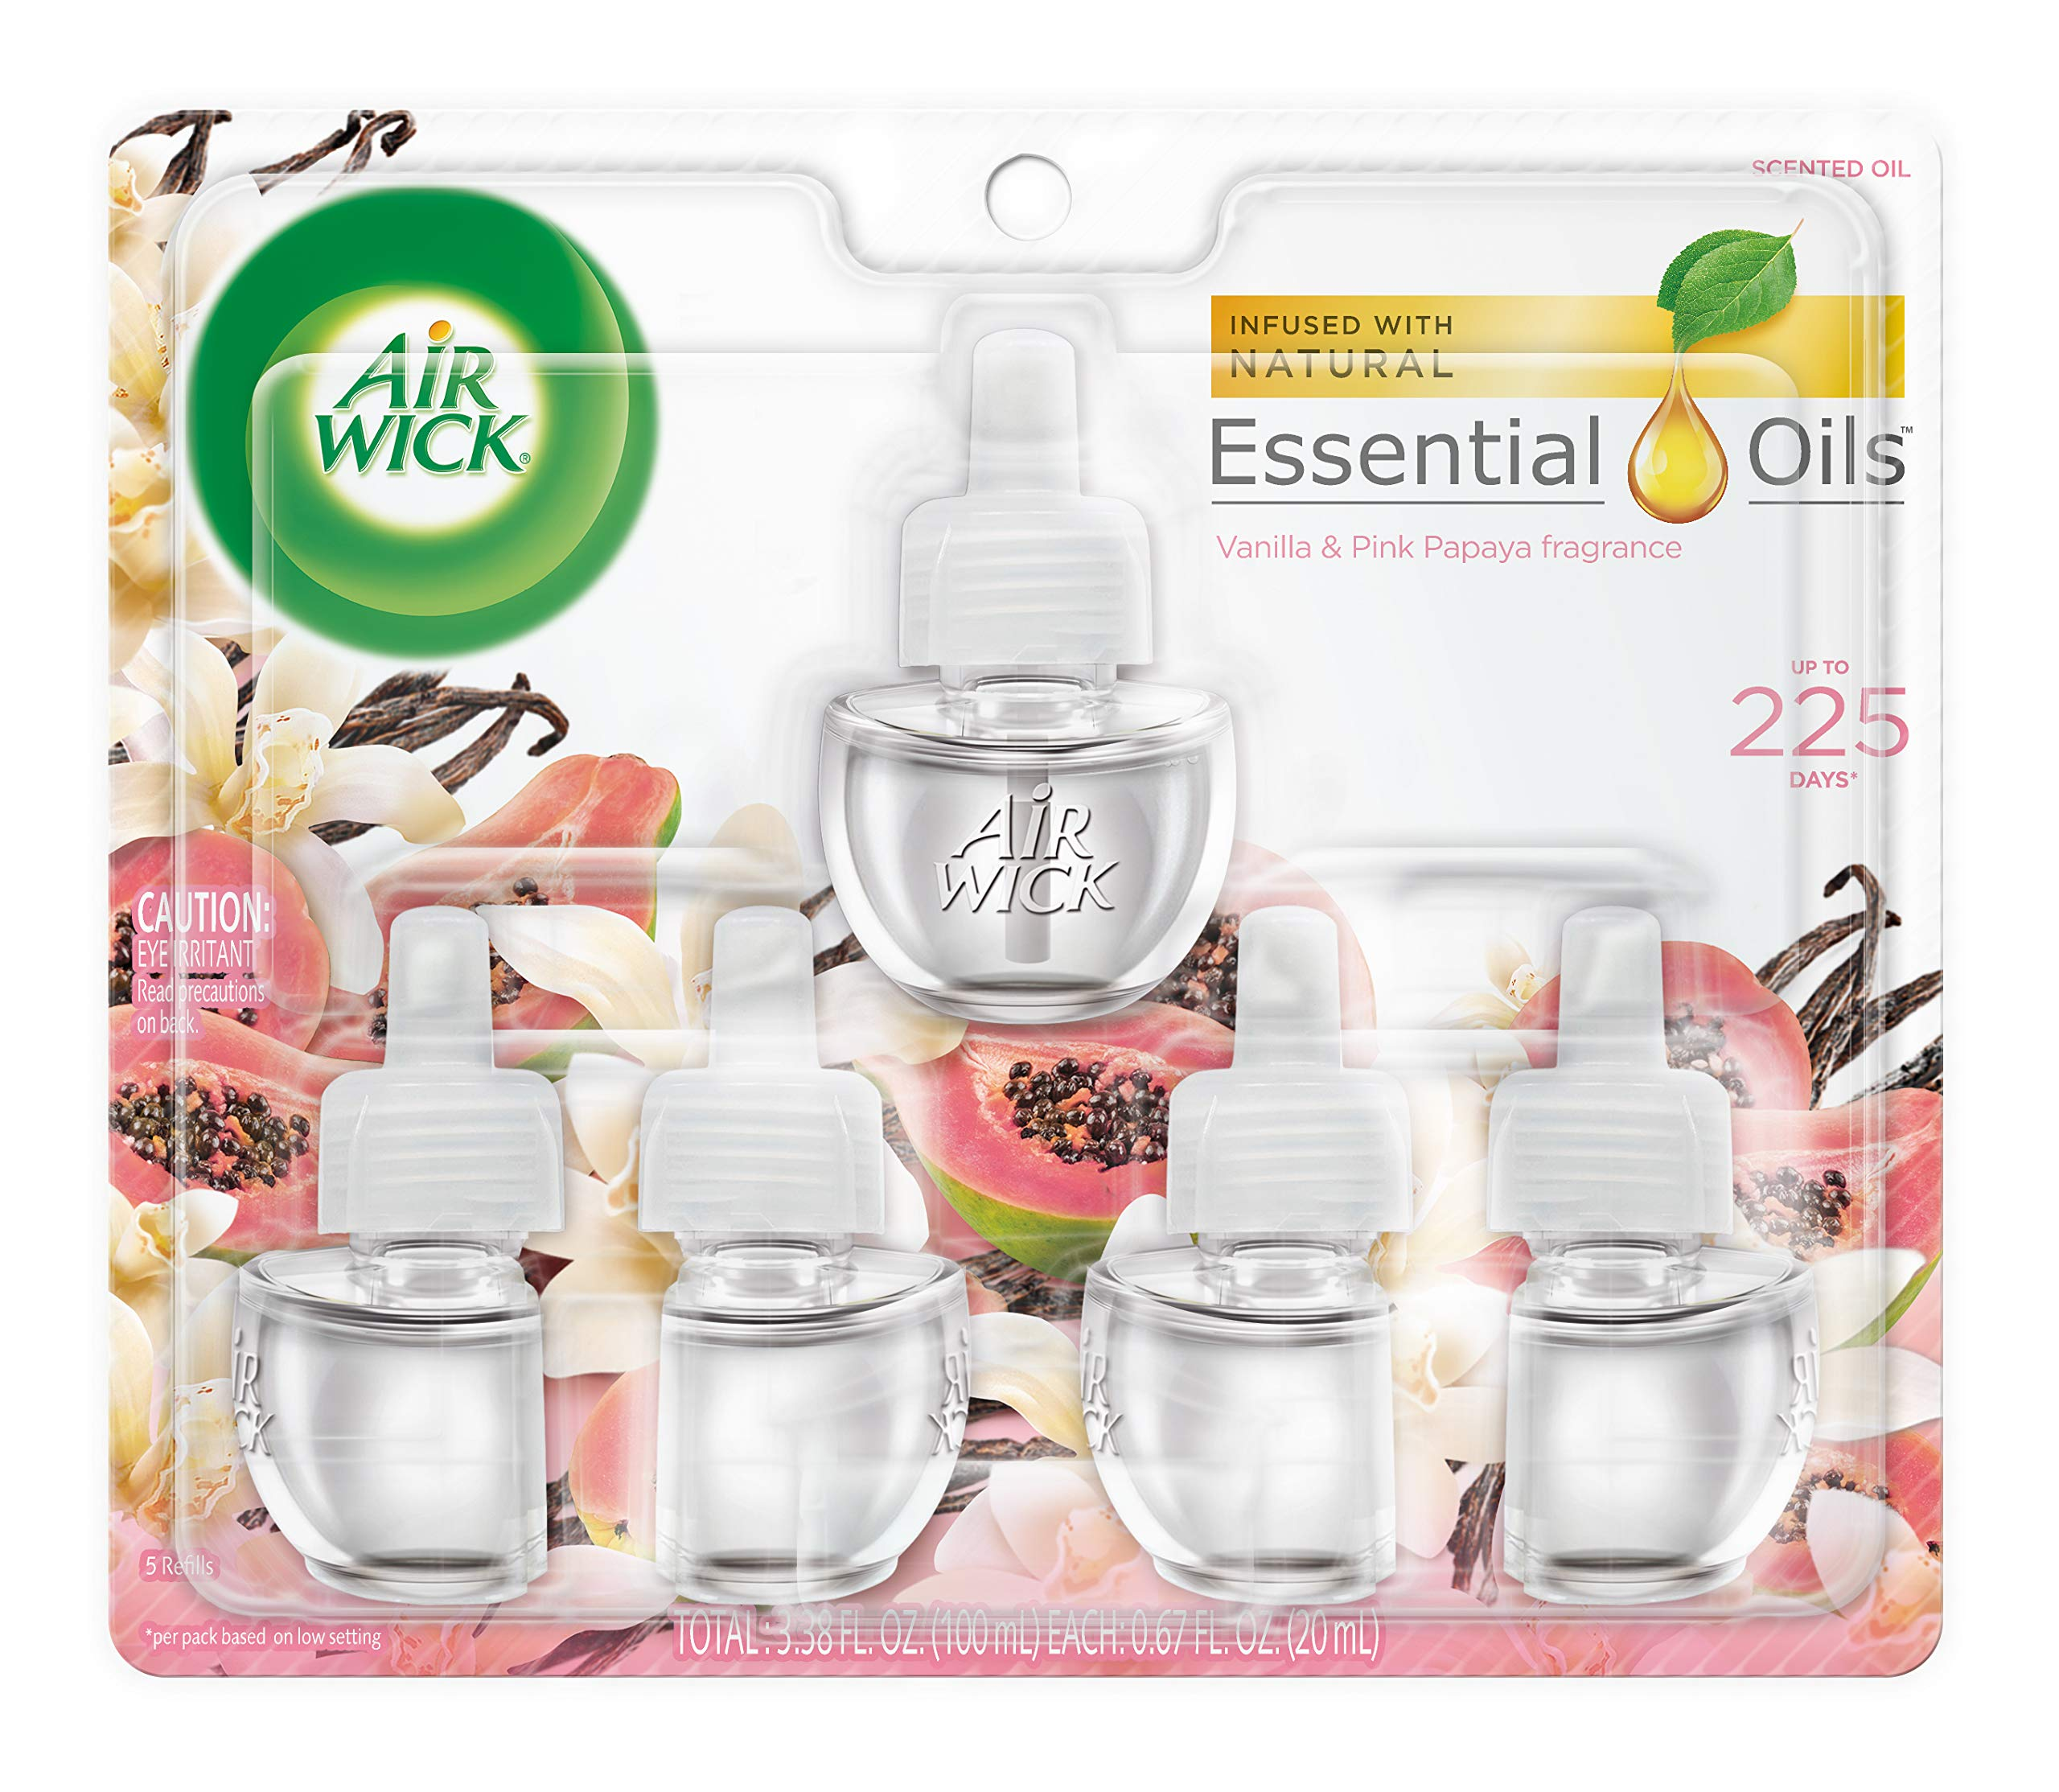 Air Wick Scented Oil Refills, Vanilla & Pink Papaya, 5 Count by Air Wick (Image #1)